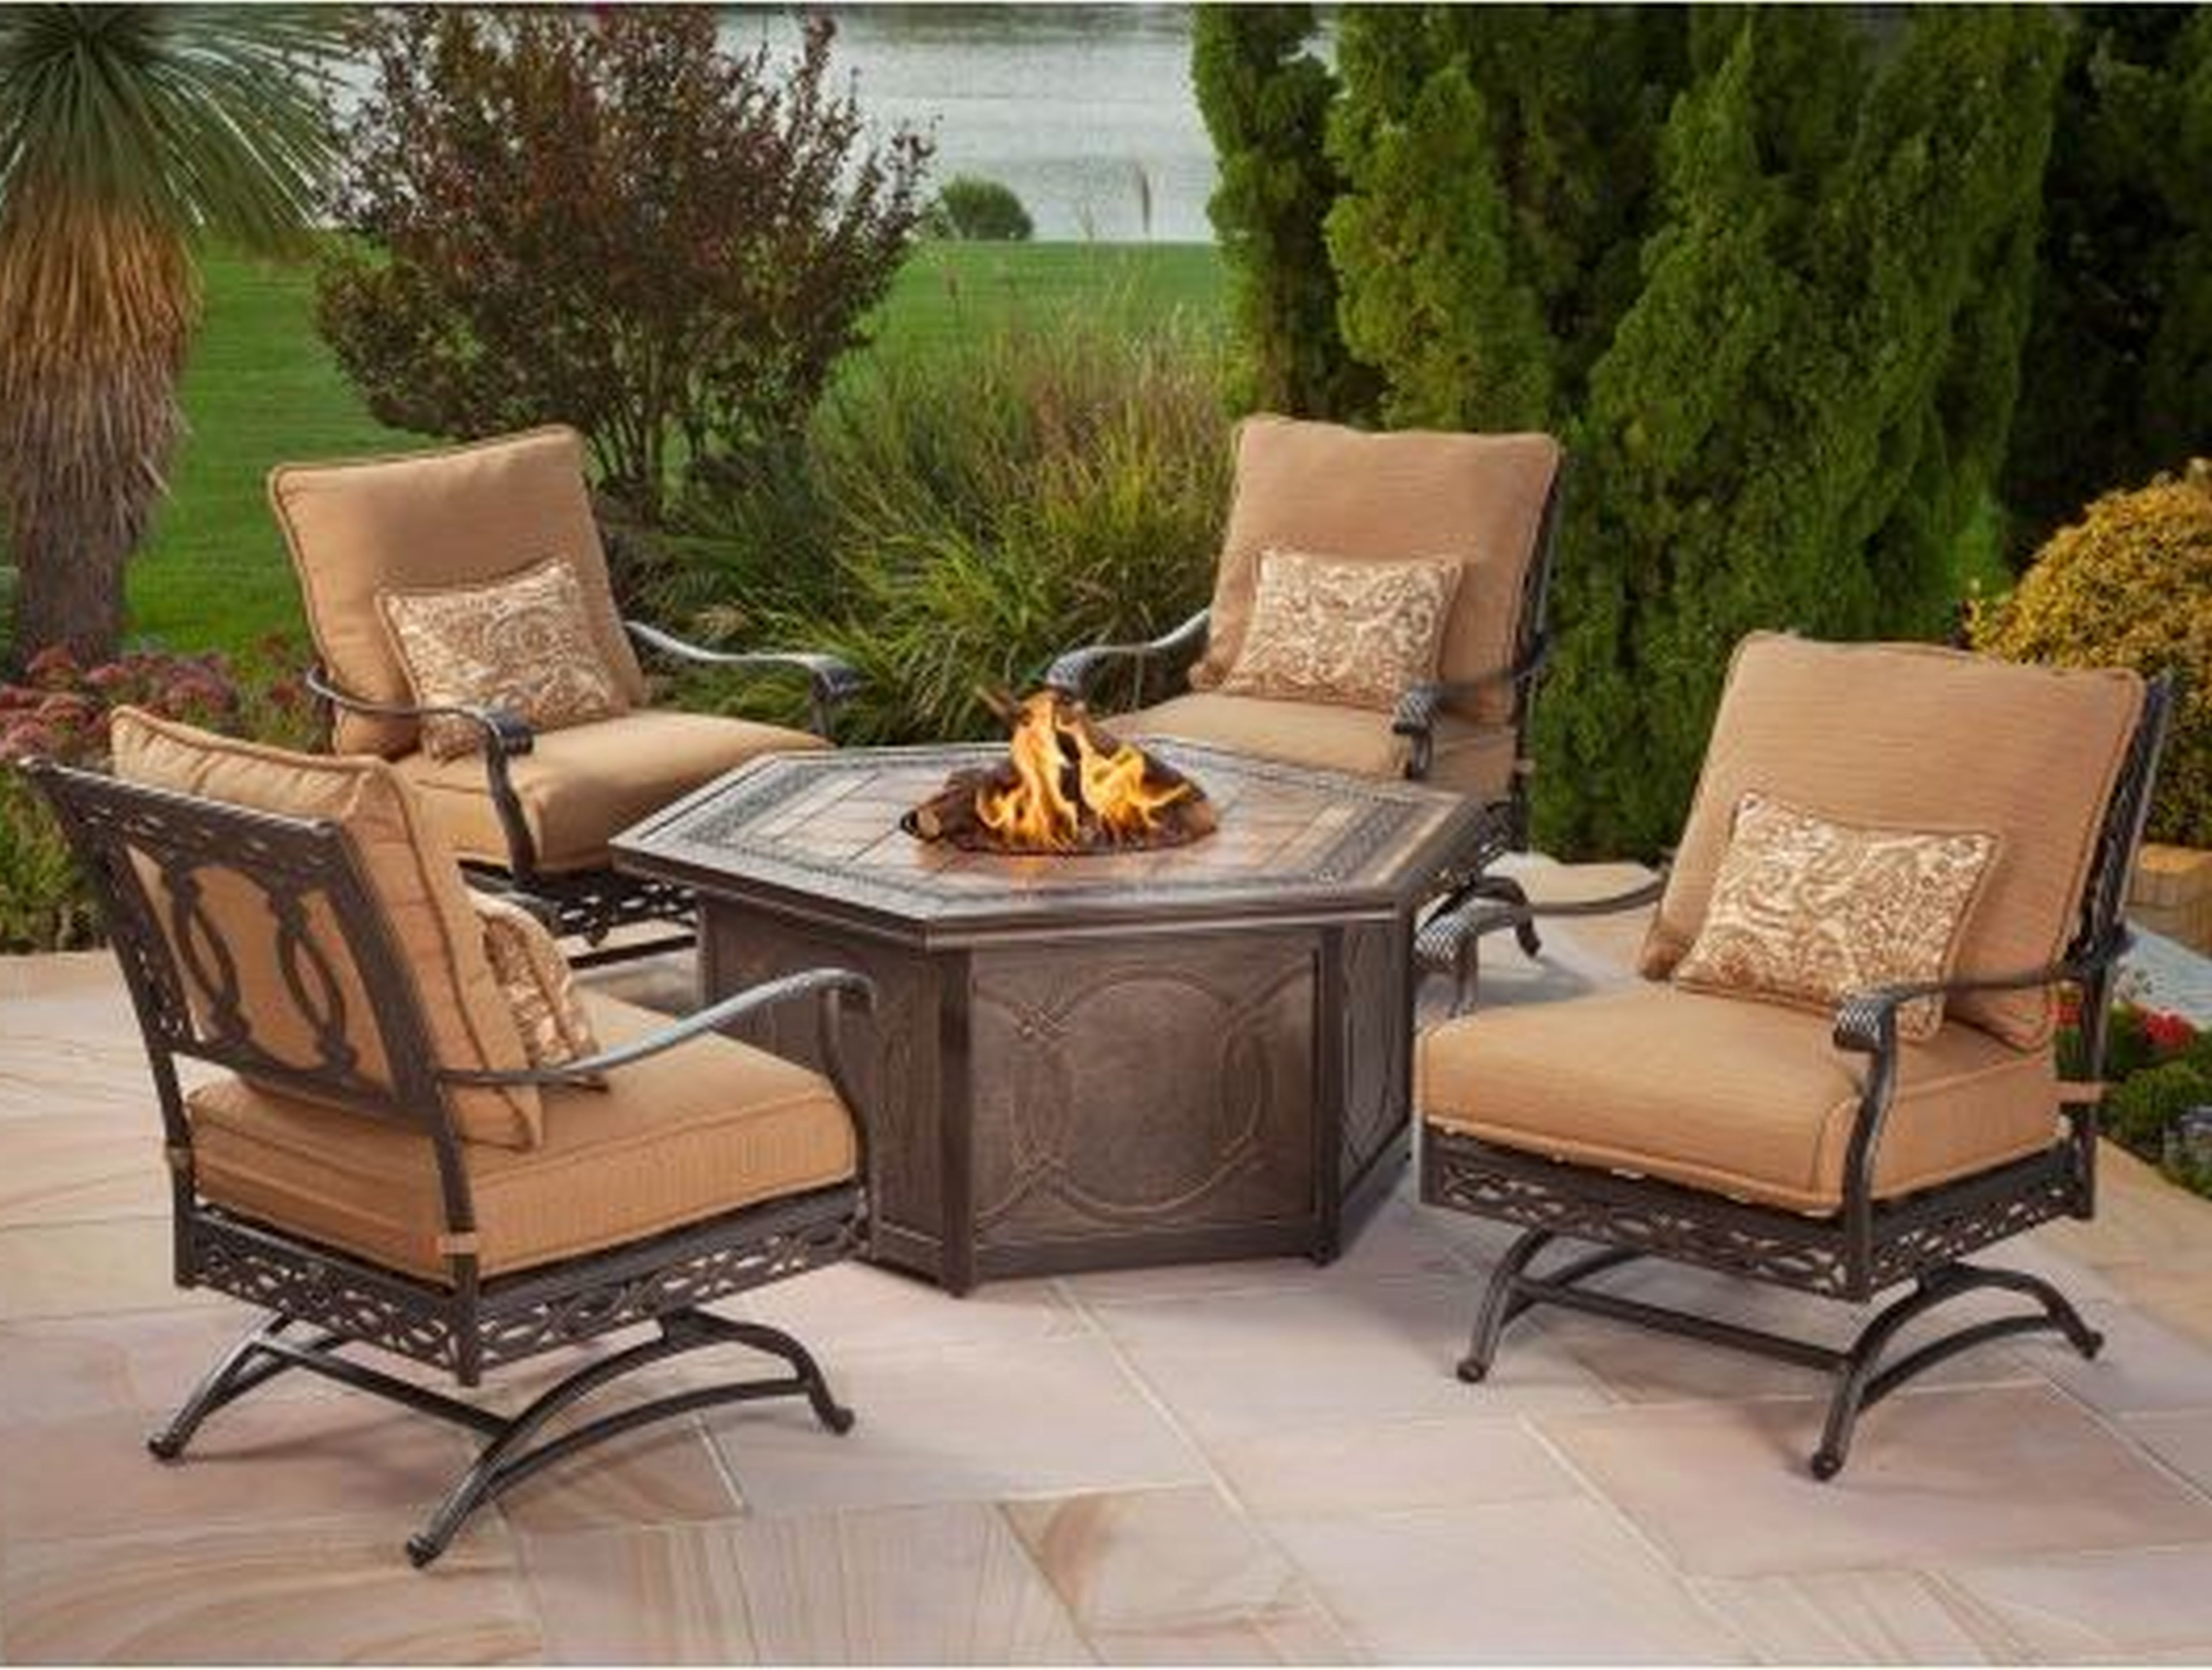 Fortune Lowes Outdoor Furniture Clearance Patio Home Design With Regard To Best And Newest Patio Conversation Sets At Lowes (View 6 of 20)